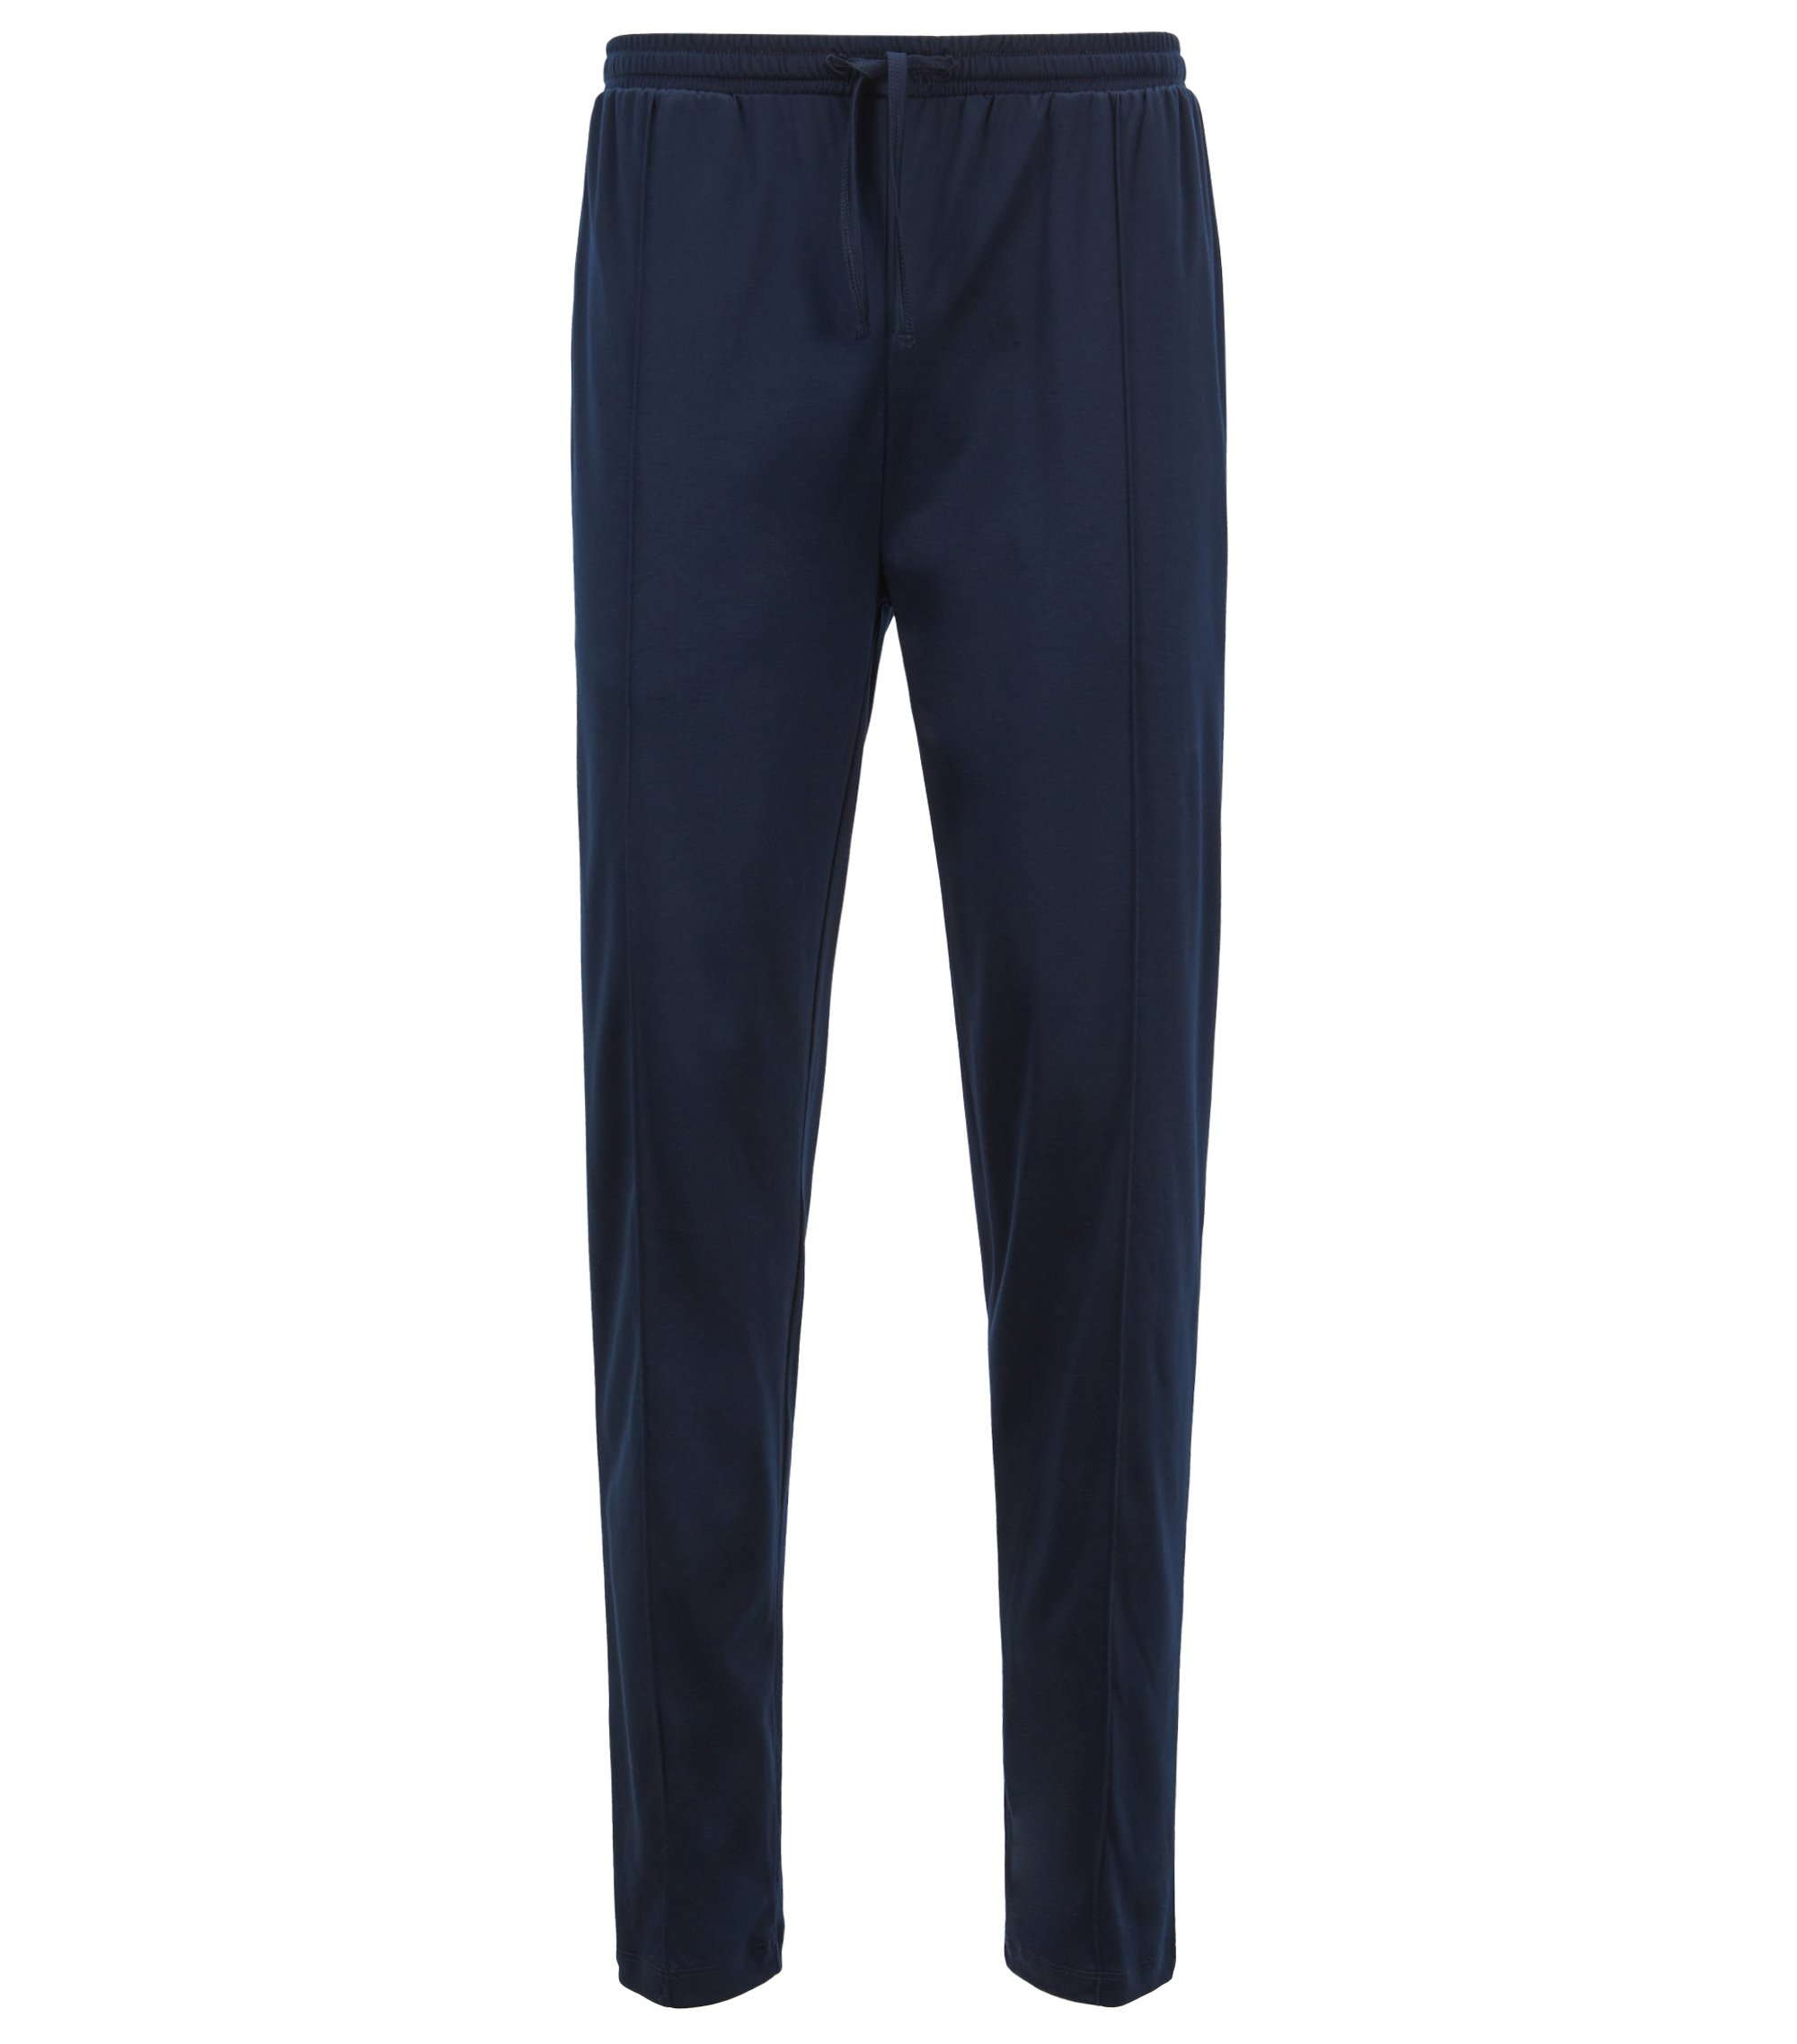 Pyjama trousers in an interlock cotton-modal blend, Dark Blue